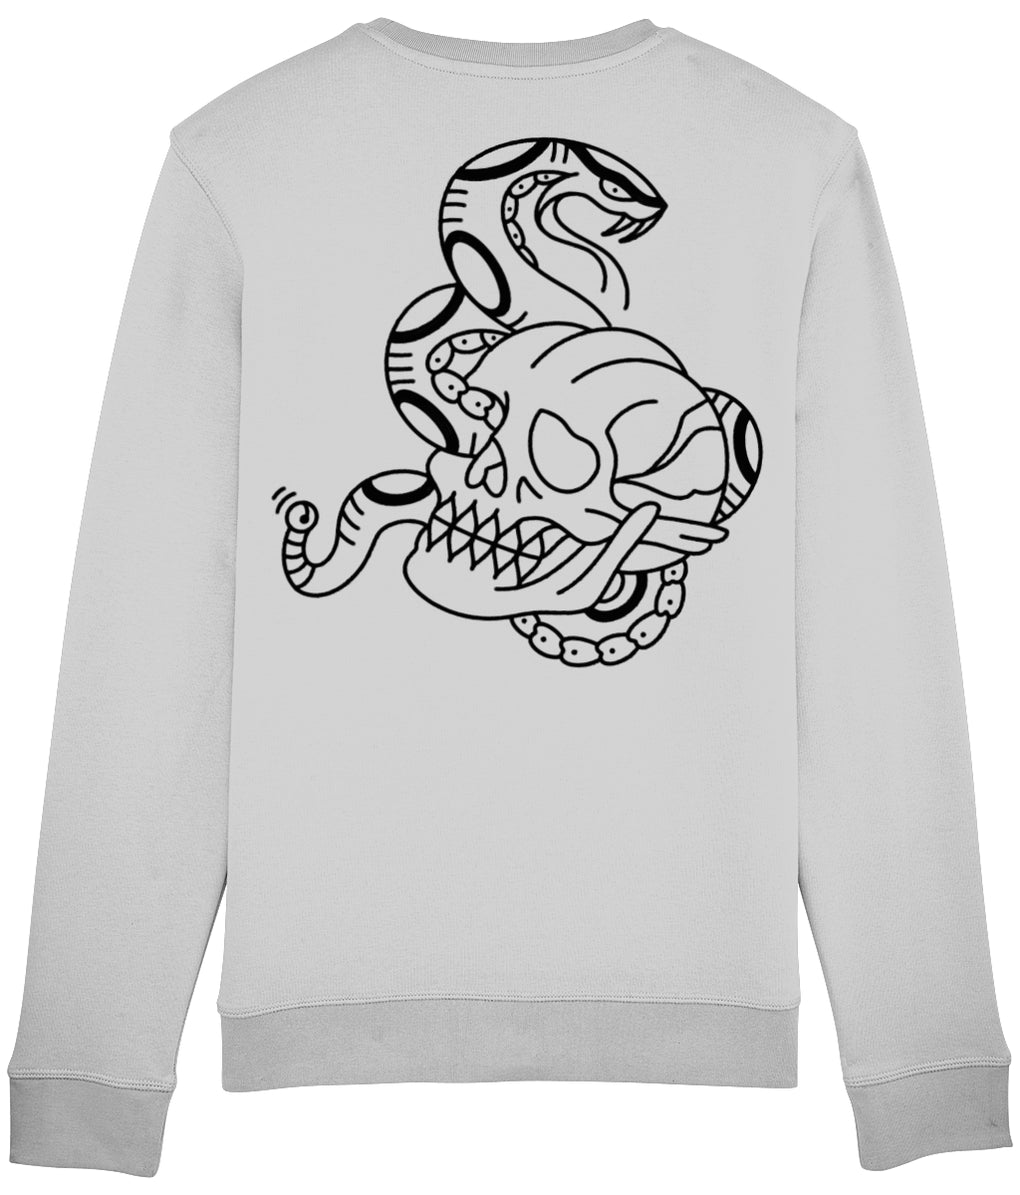 tattoo inspired Clothing Snake & Skull - Grey Sweatshirt